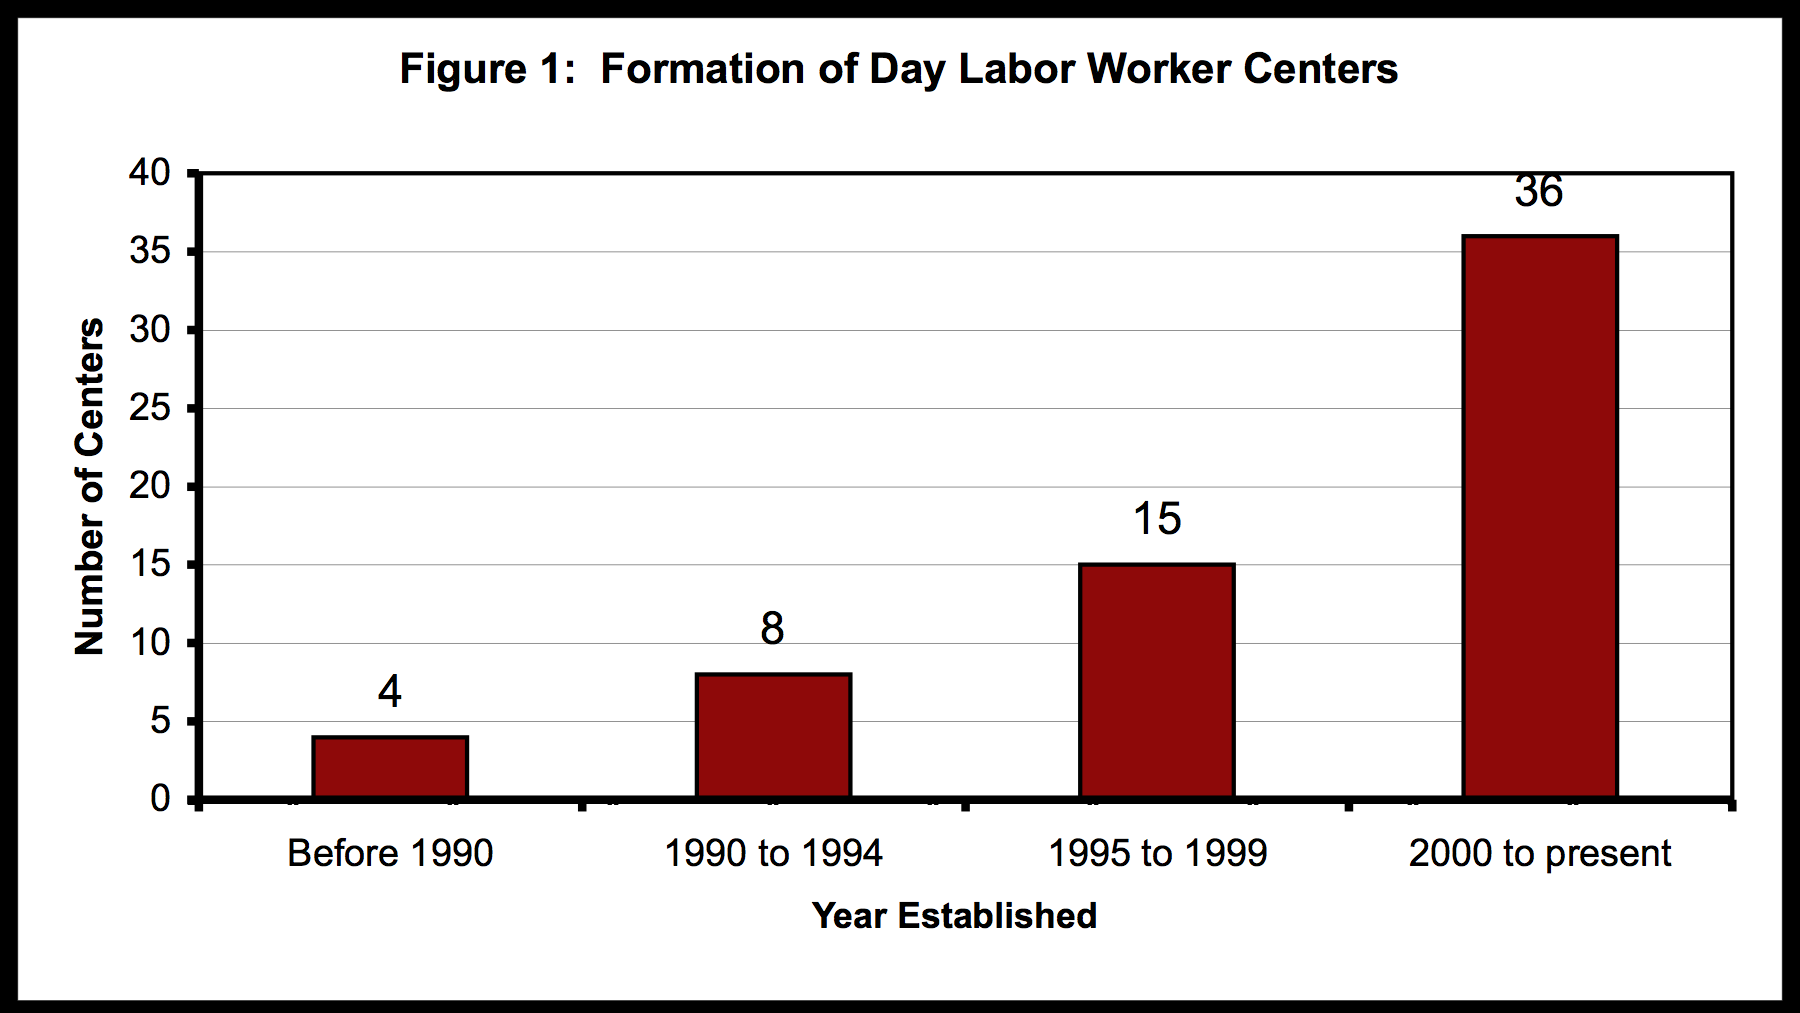 Source: Worker Center Survey, 2004 Source: National Day Labor Survey, 2004.